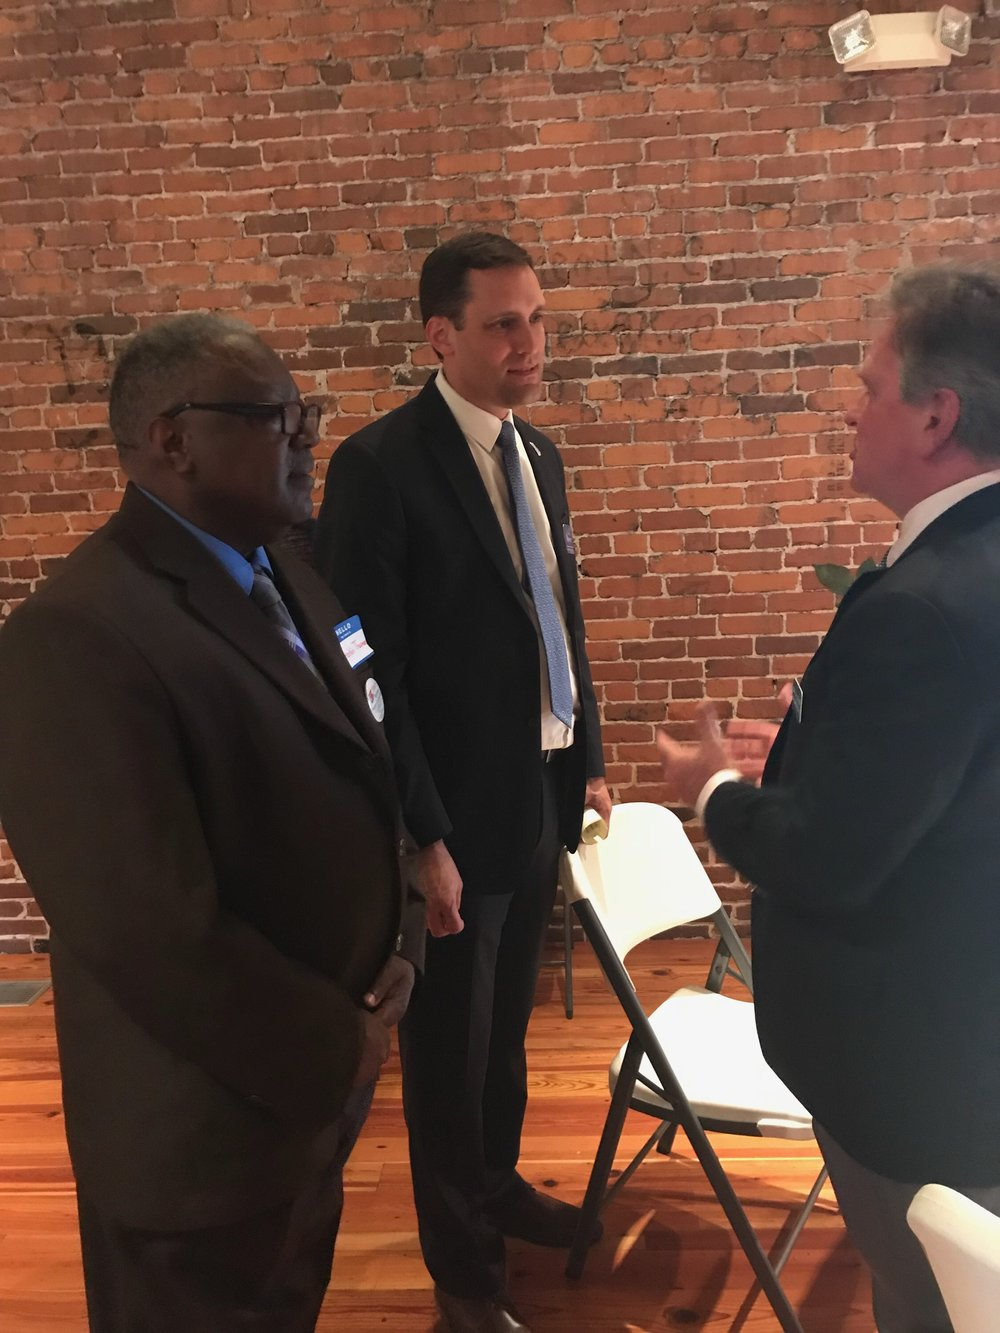 Graig Meyer, NC House District 50 and Franklin Thurman attended the fundraiser at the Vineland Station